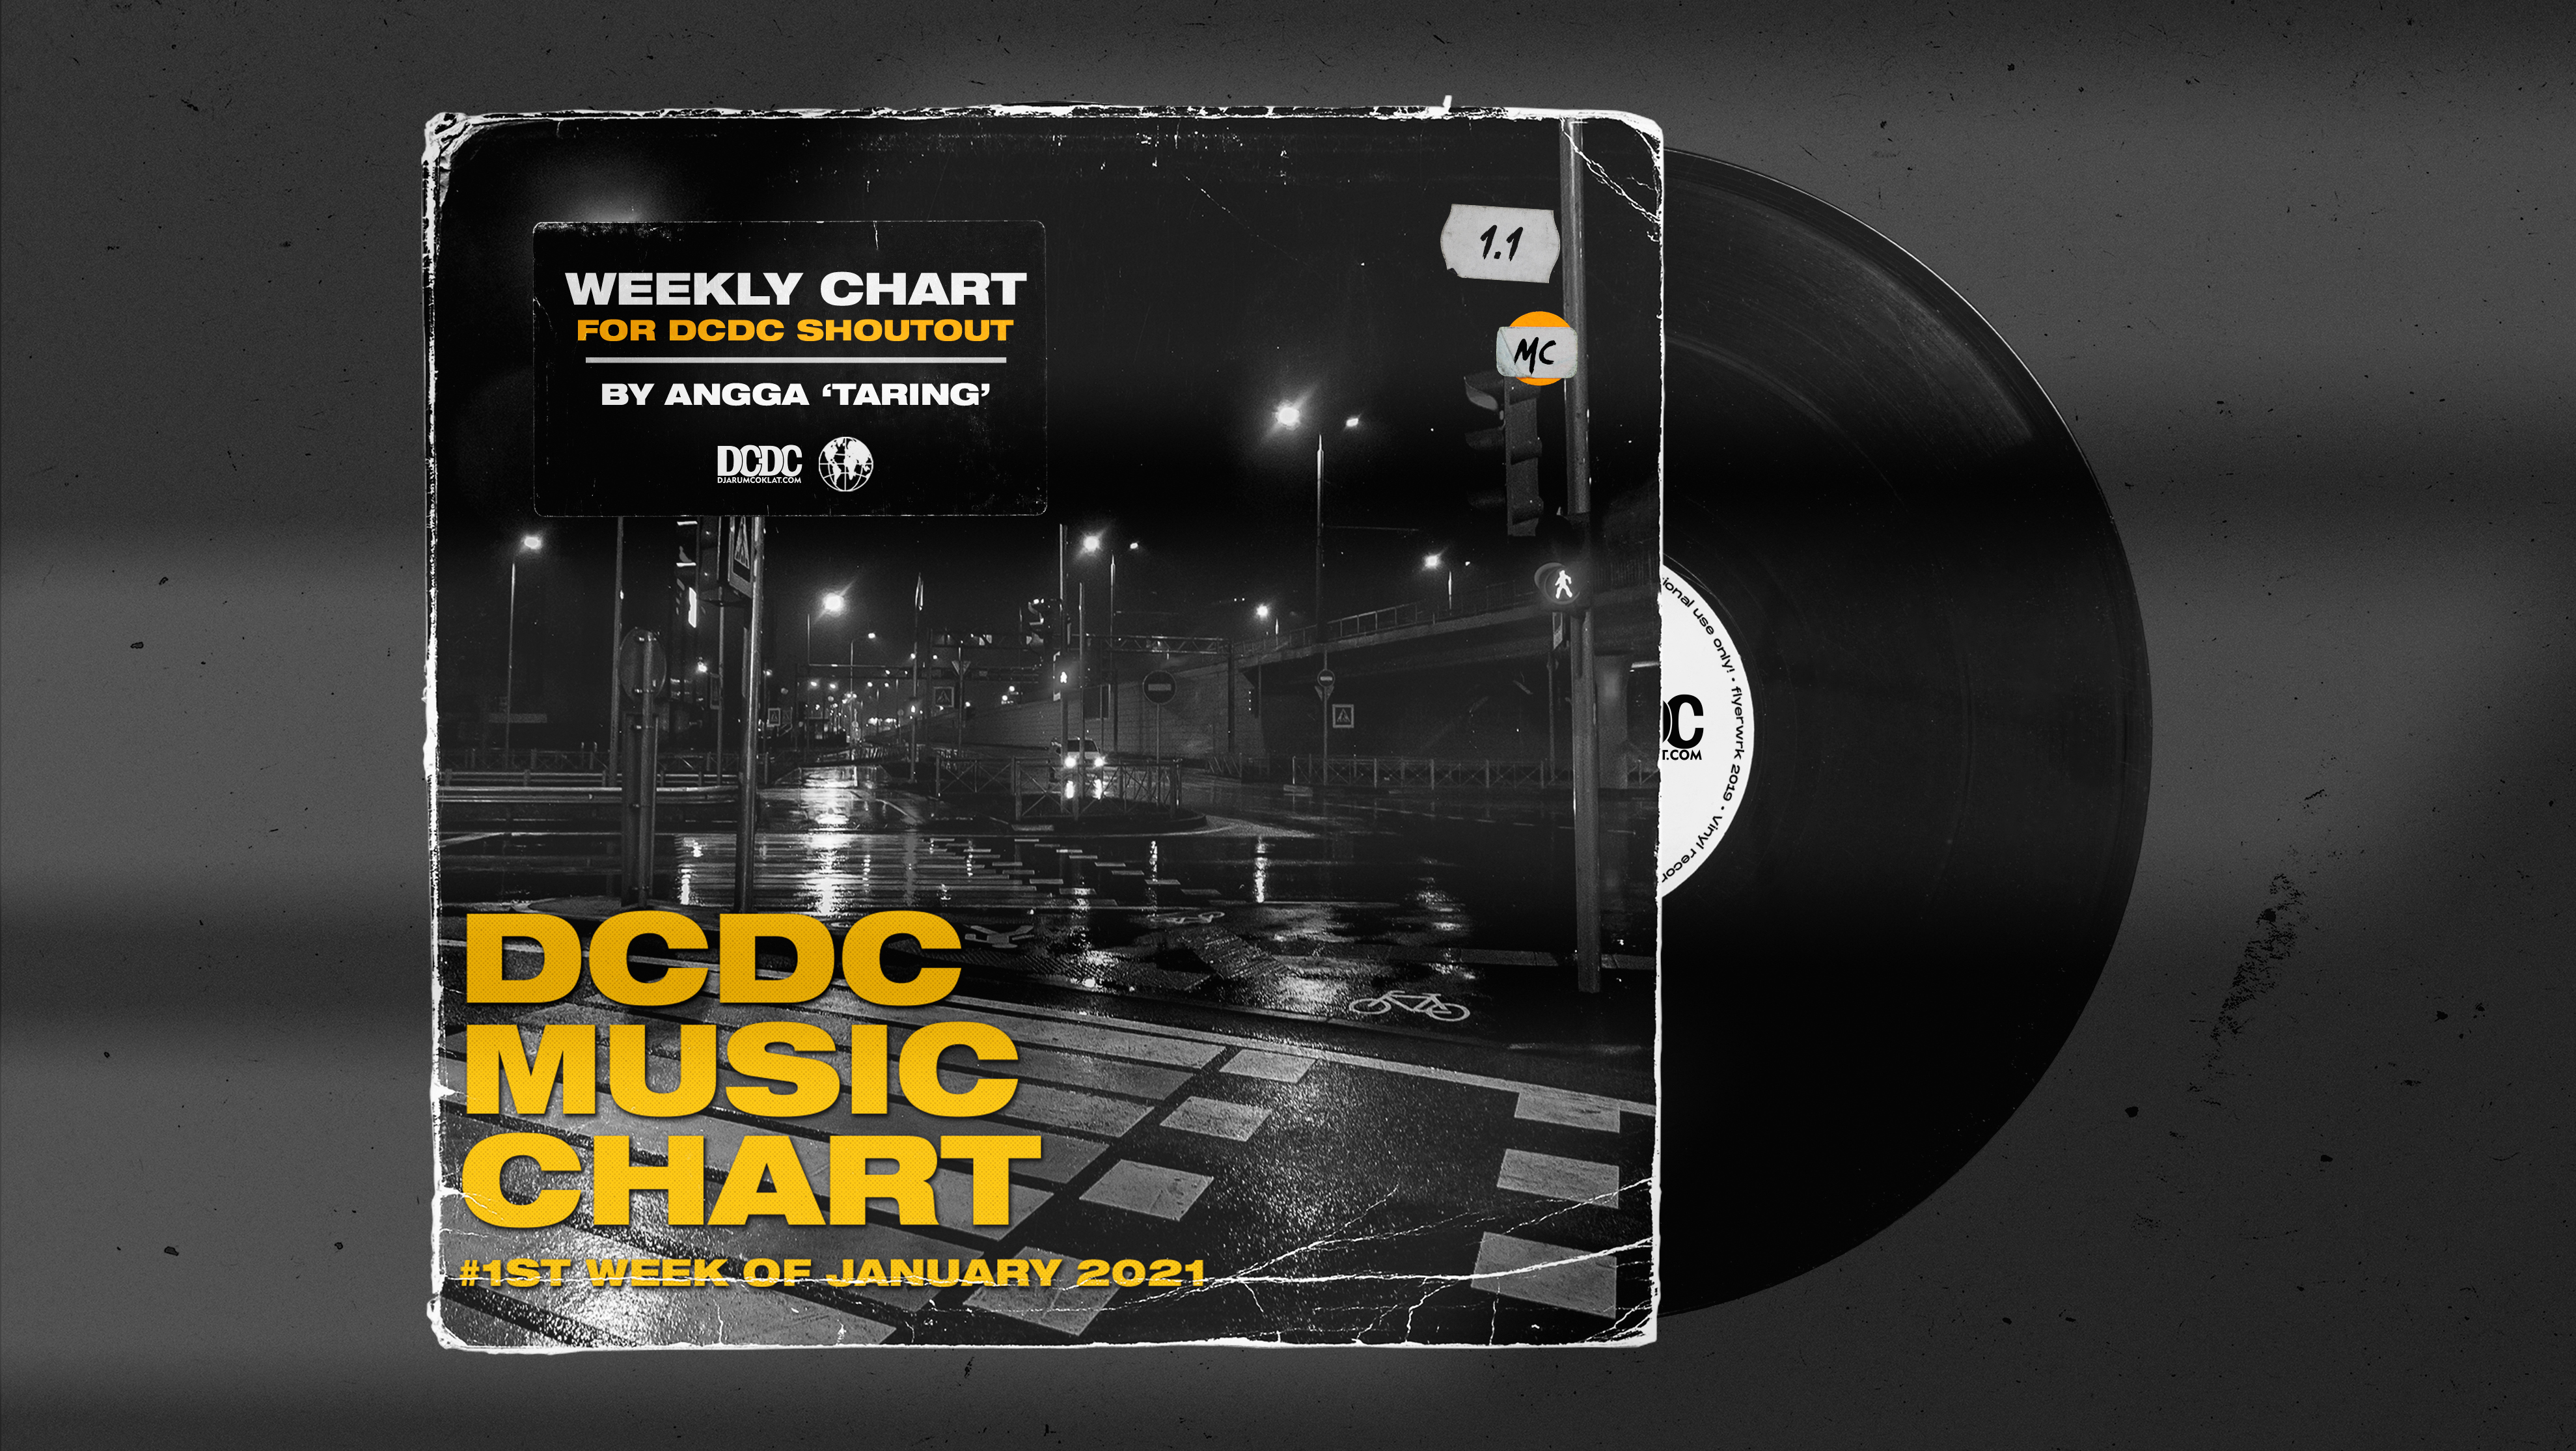 DCDC Music Chart - #1st Week of January 2021